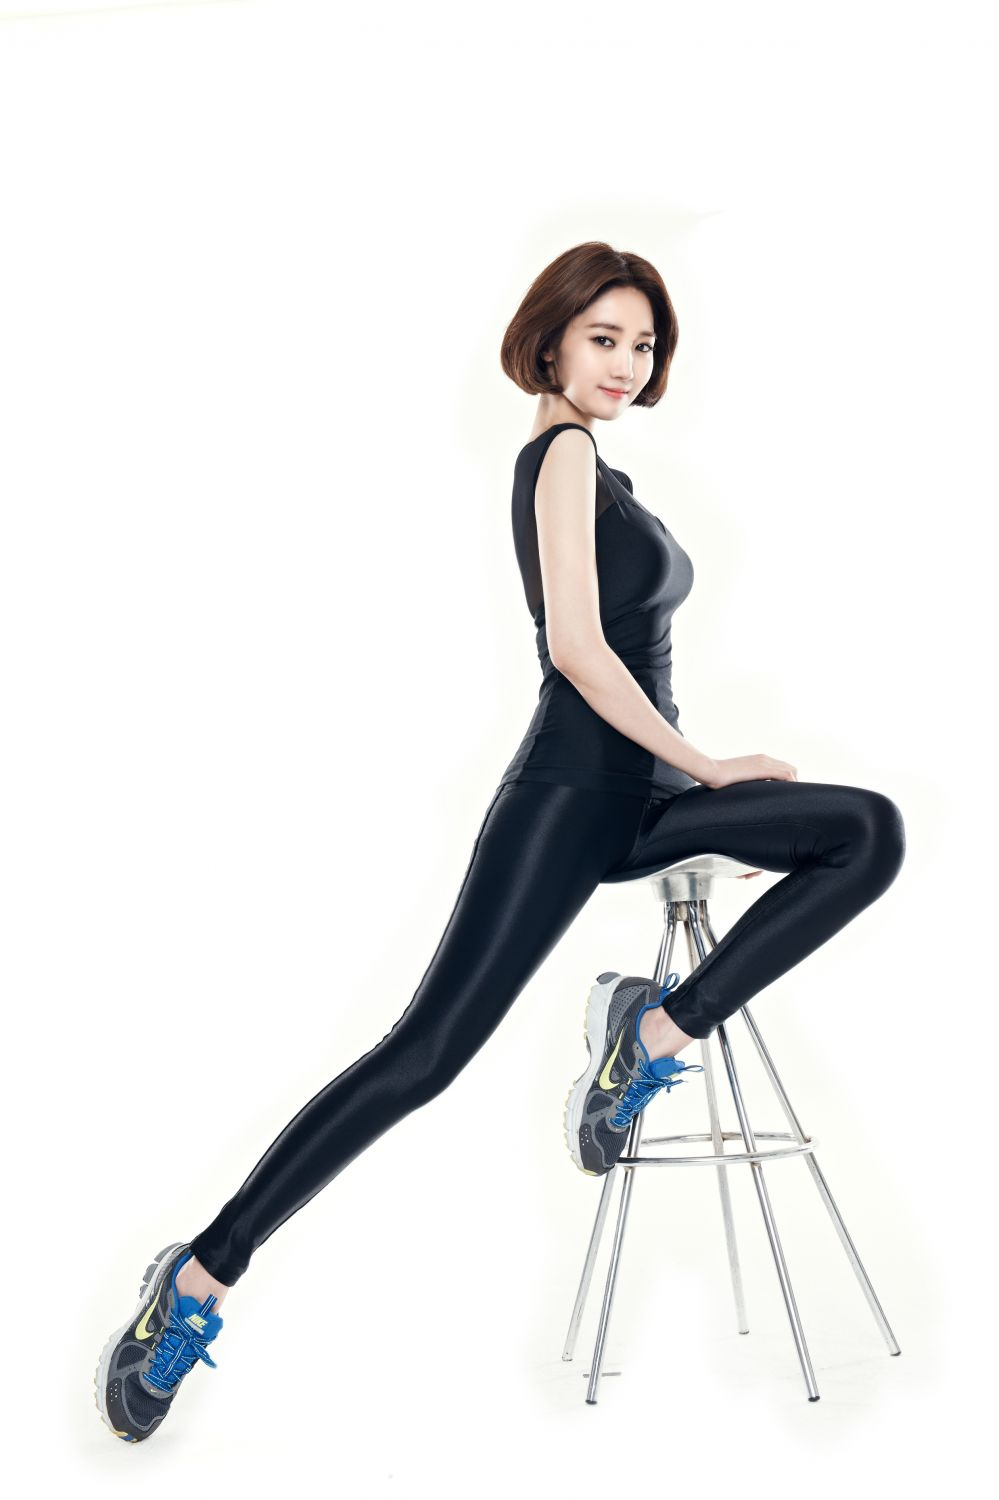 Go Jun Hee Wallpaper Ko joon-hee - miero photoshoot: galleryhip.com/go-jun-hee-wallpaper.html